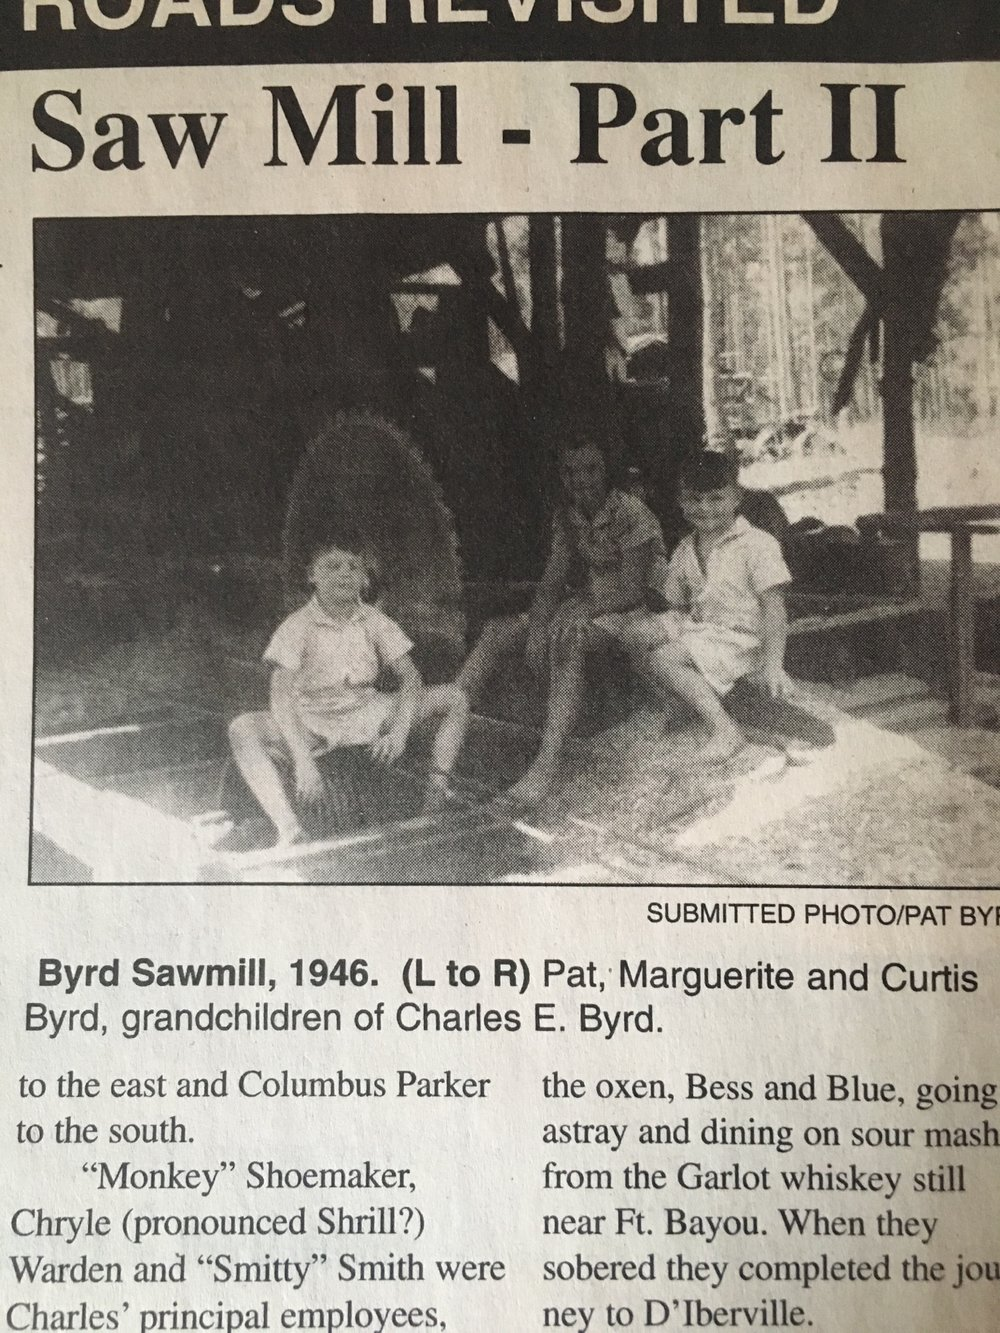 Aunt Maggie, Uncle Curt, and Uncle Pat at the sawmill in 46, Dad must have been in the house somewhere.